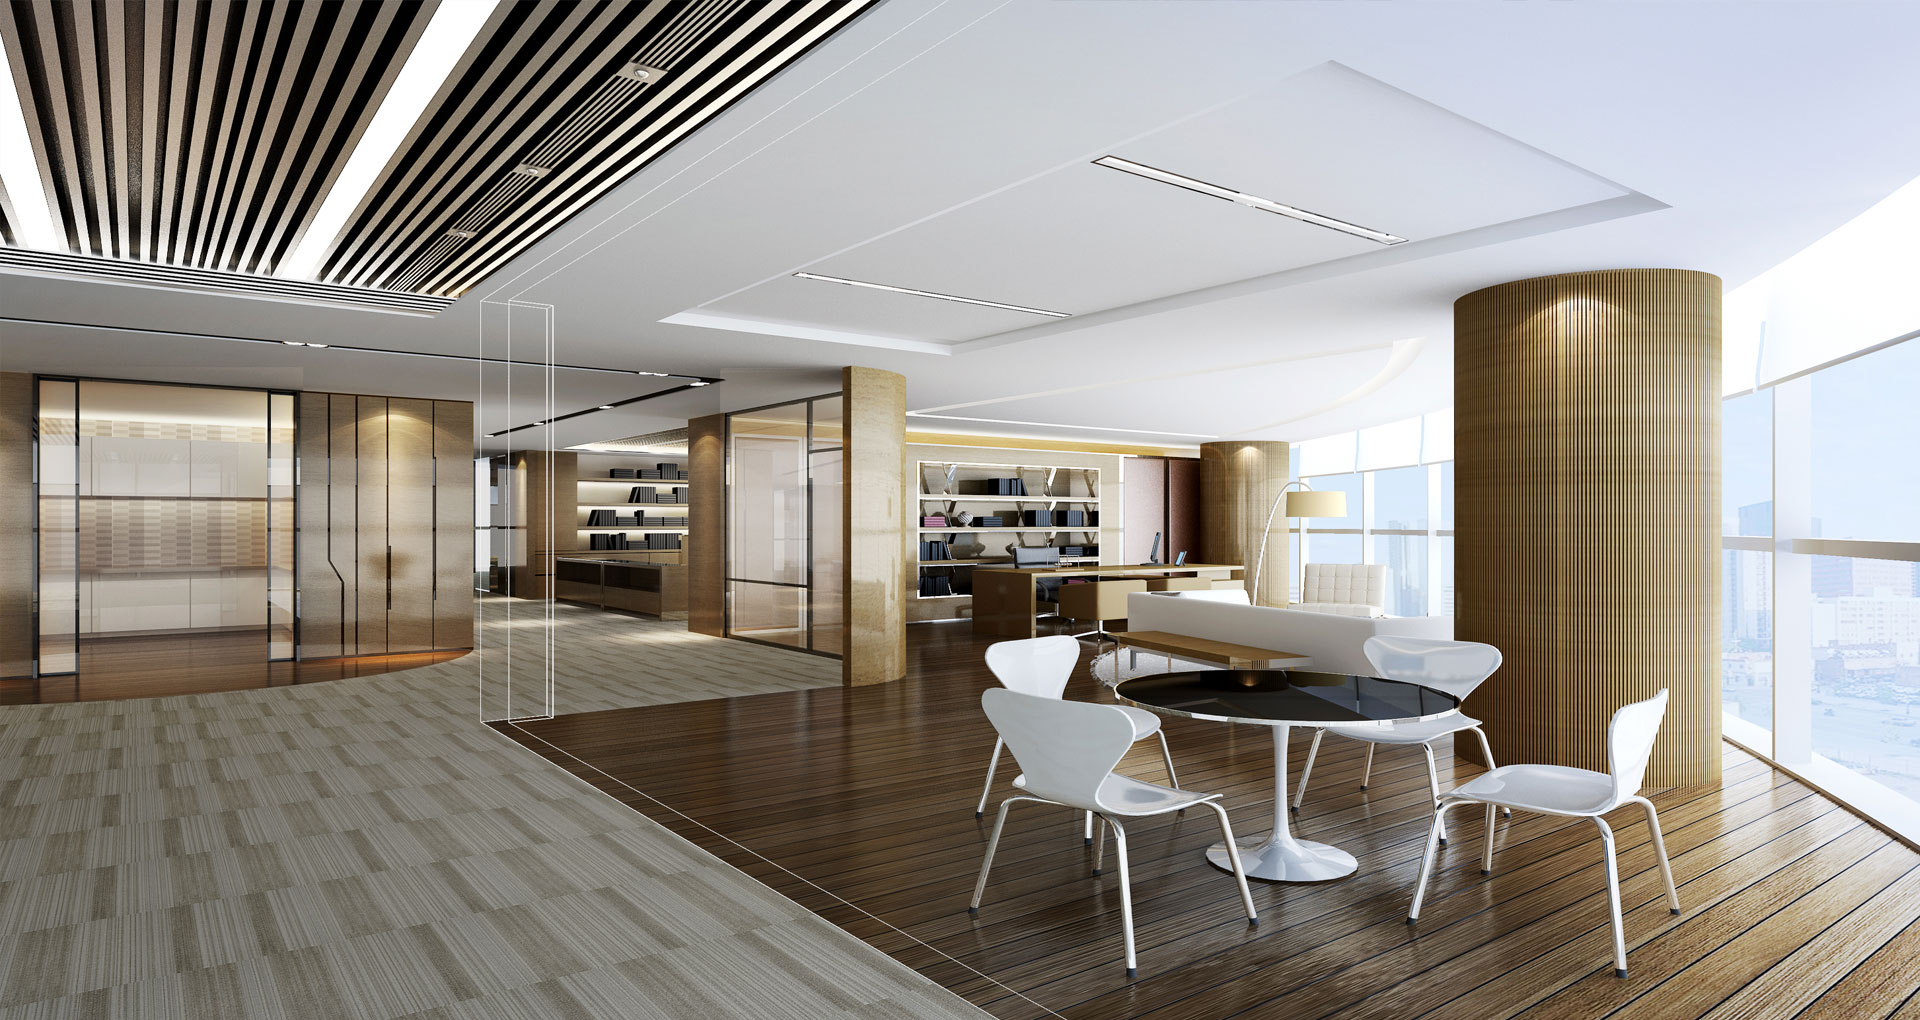 Office interior design inpro concepts design for Graphic design interior design